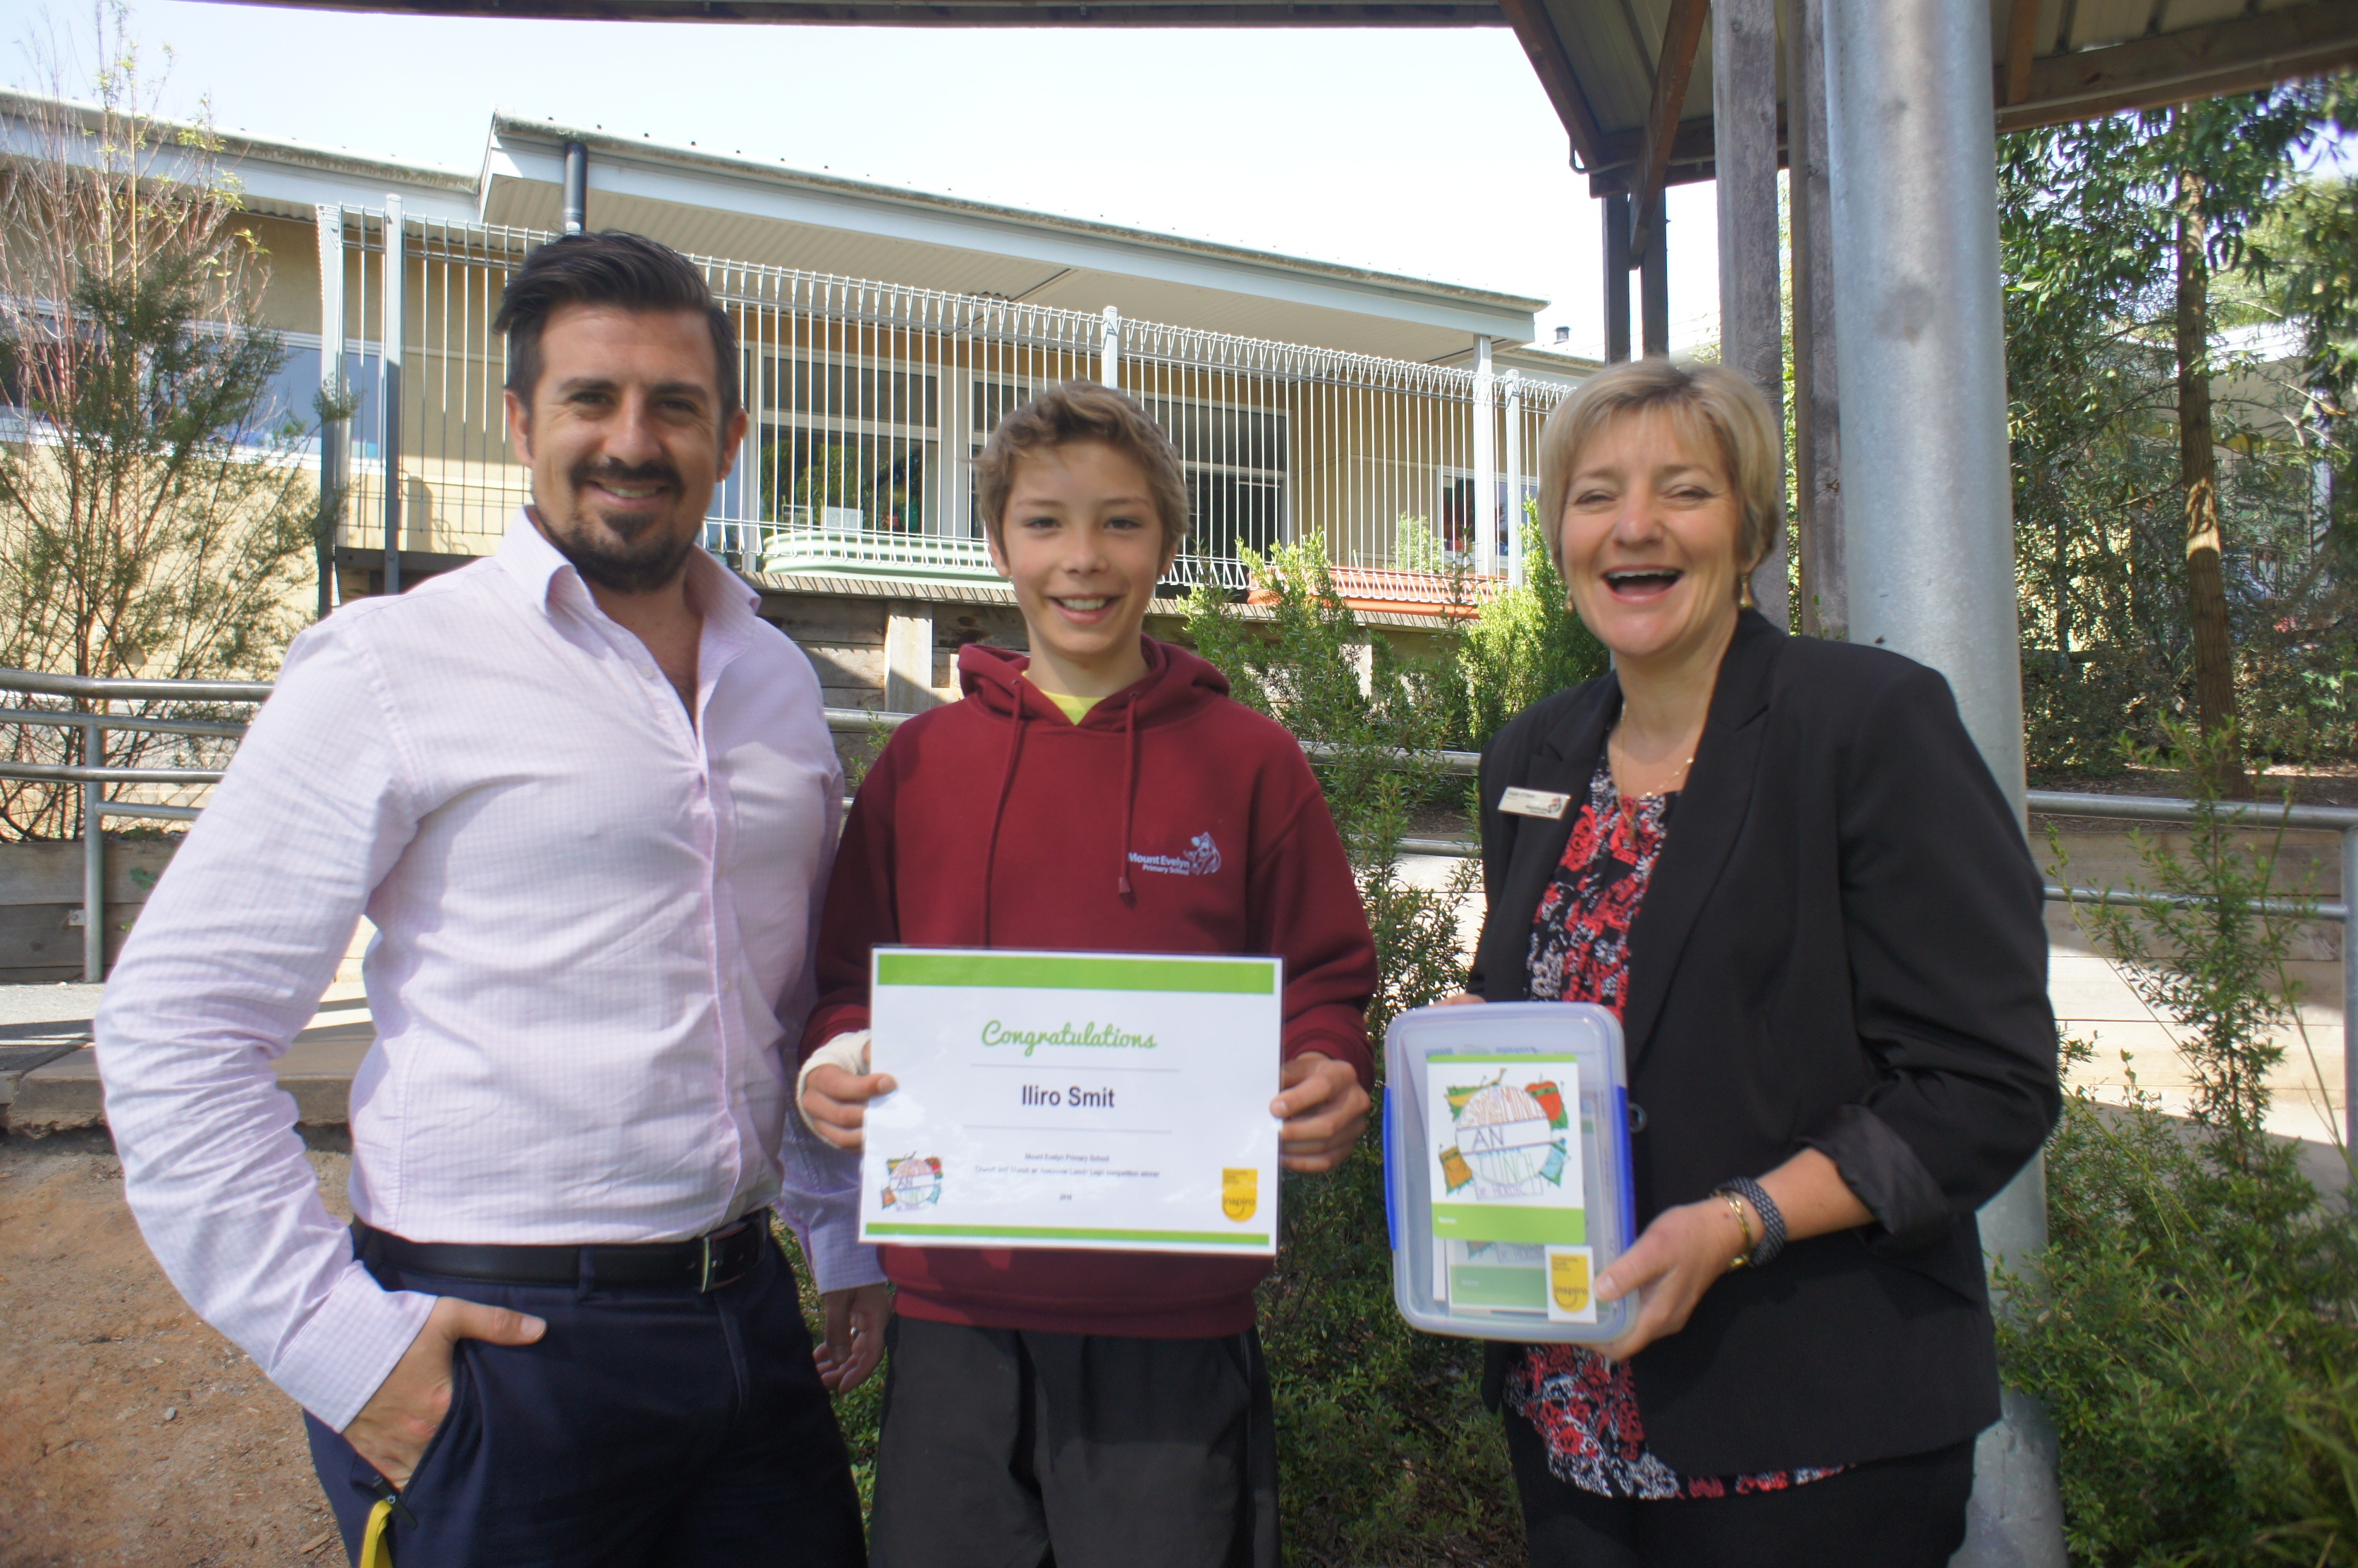 Healthy eating plan to slow obesity problem in Victorian schools